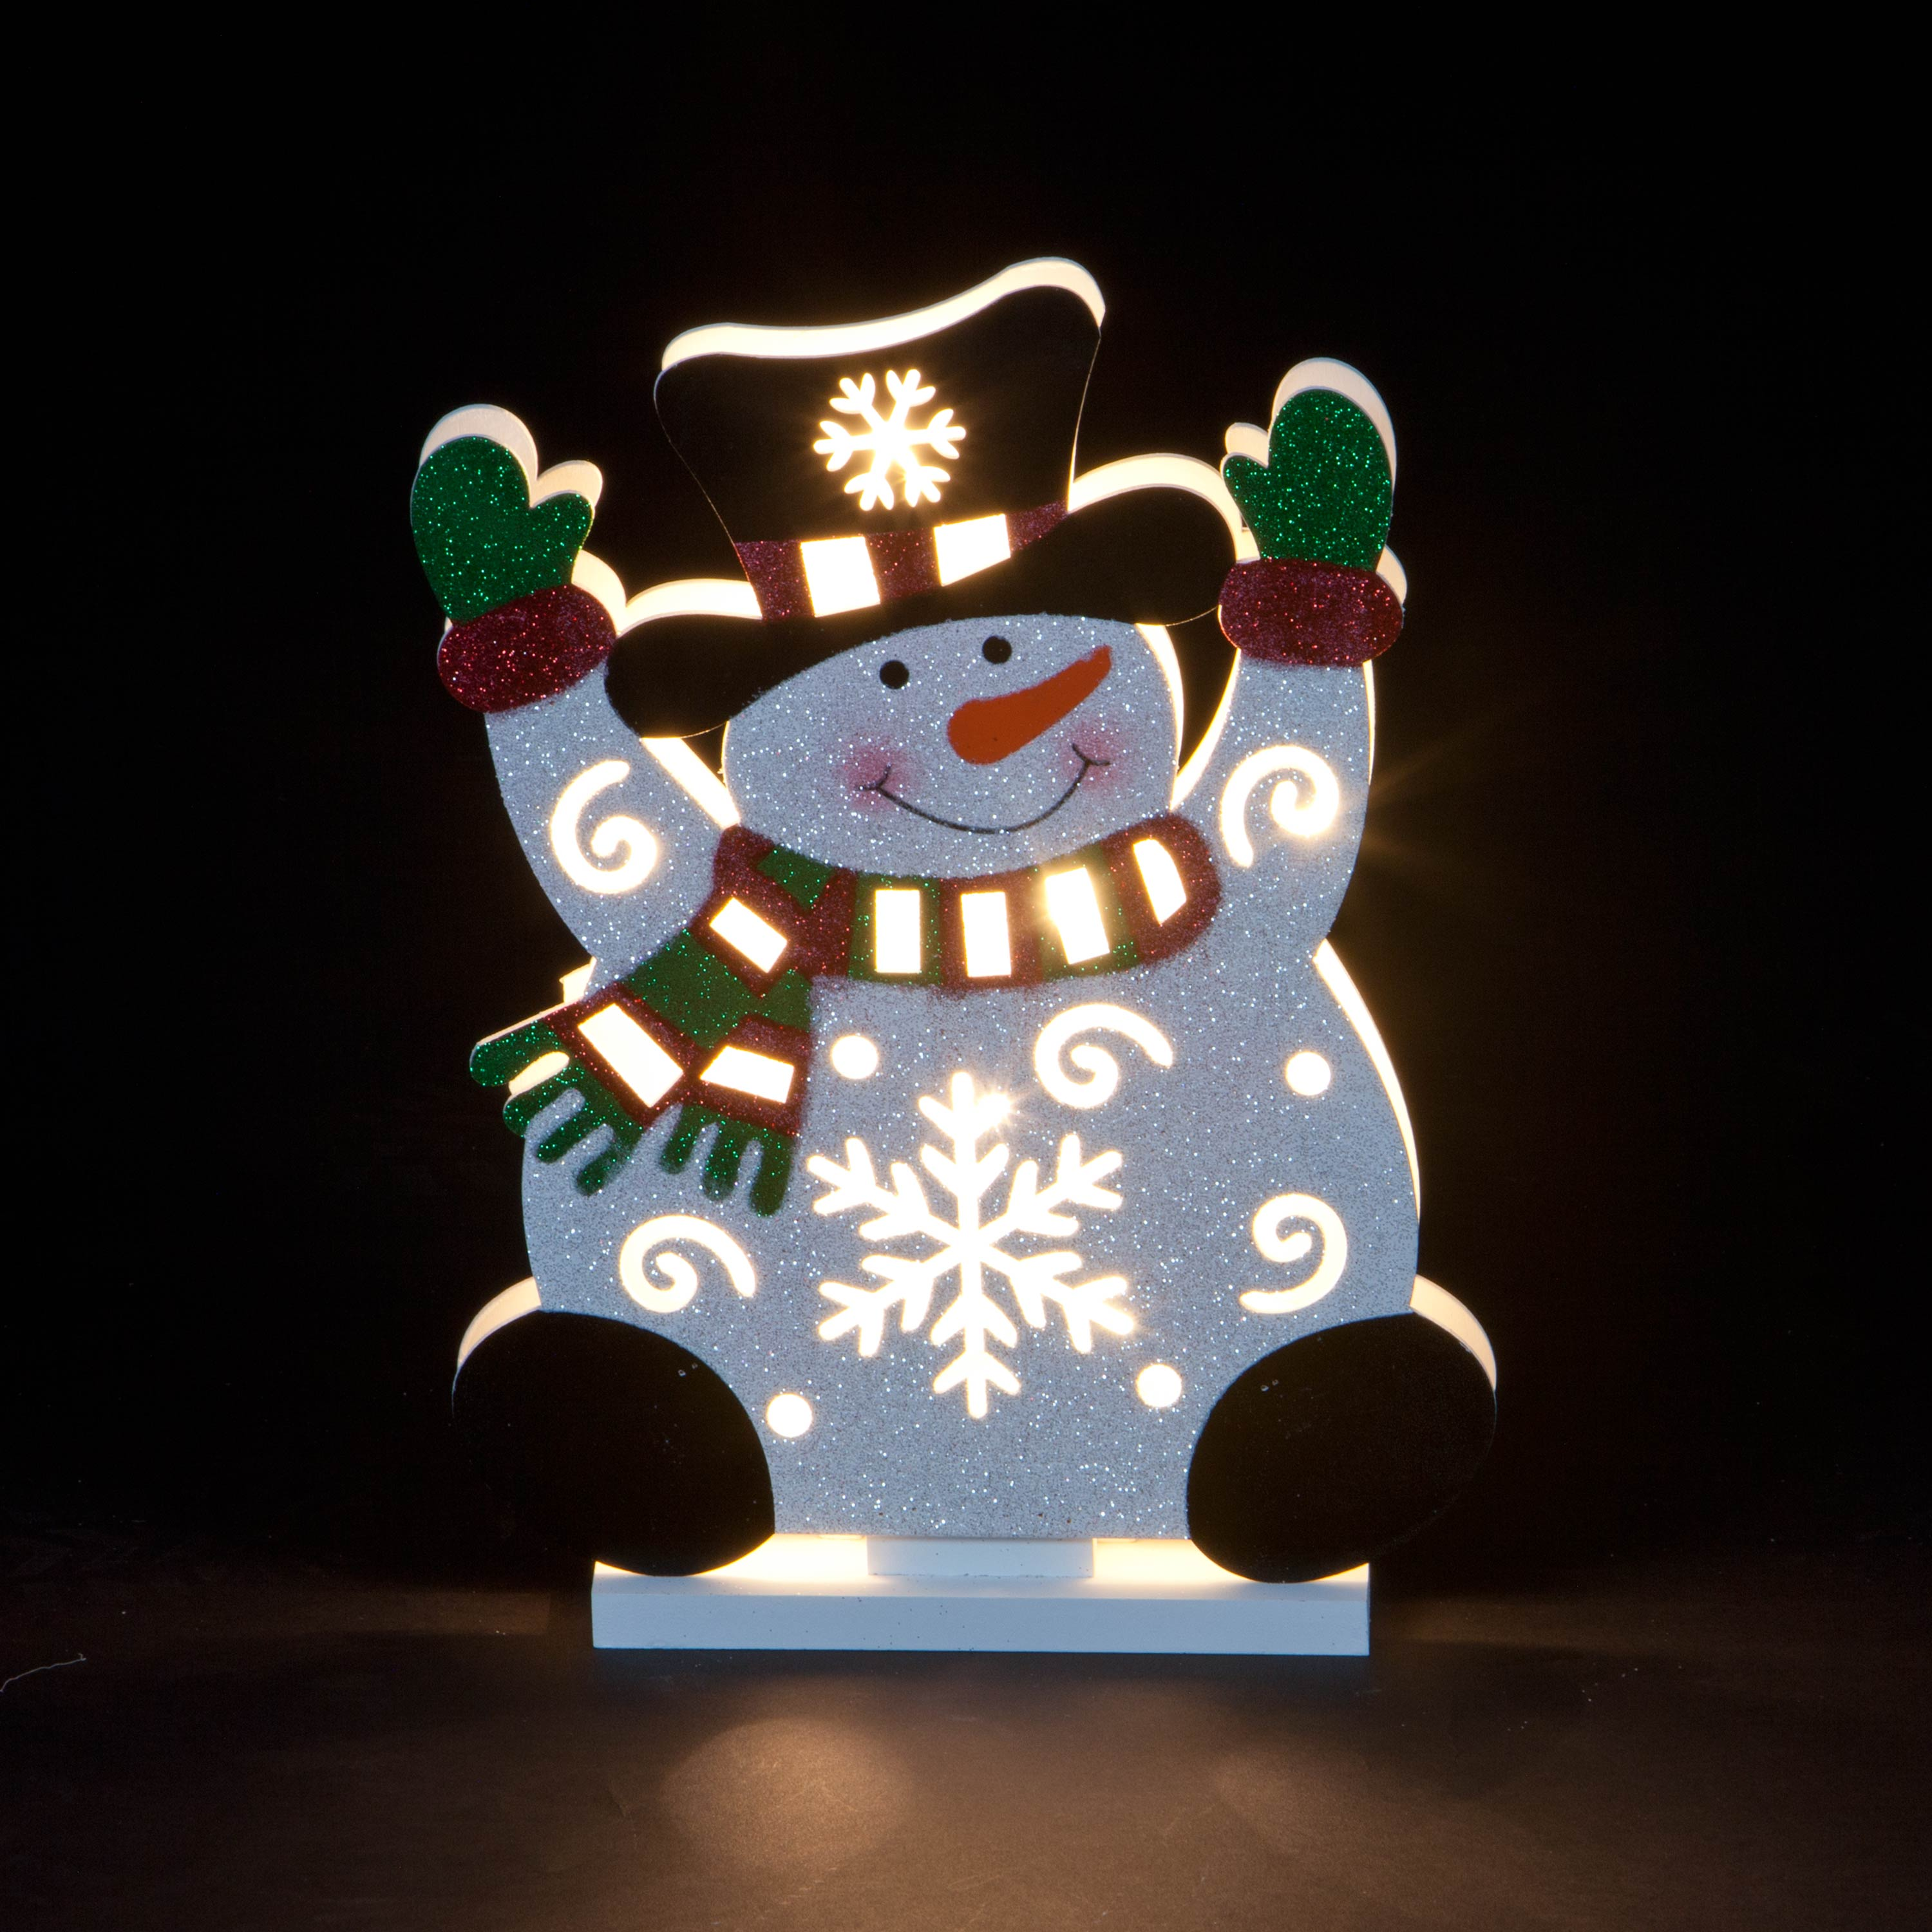 Christmas Trees and Lights Hand-Carved Snowman Wave Sign